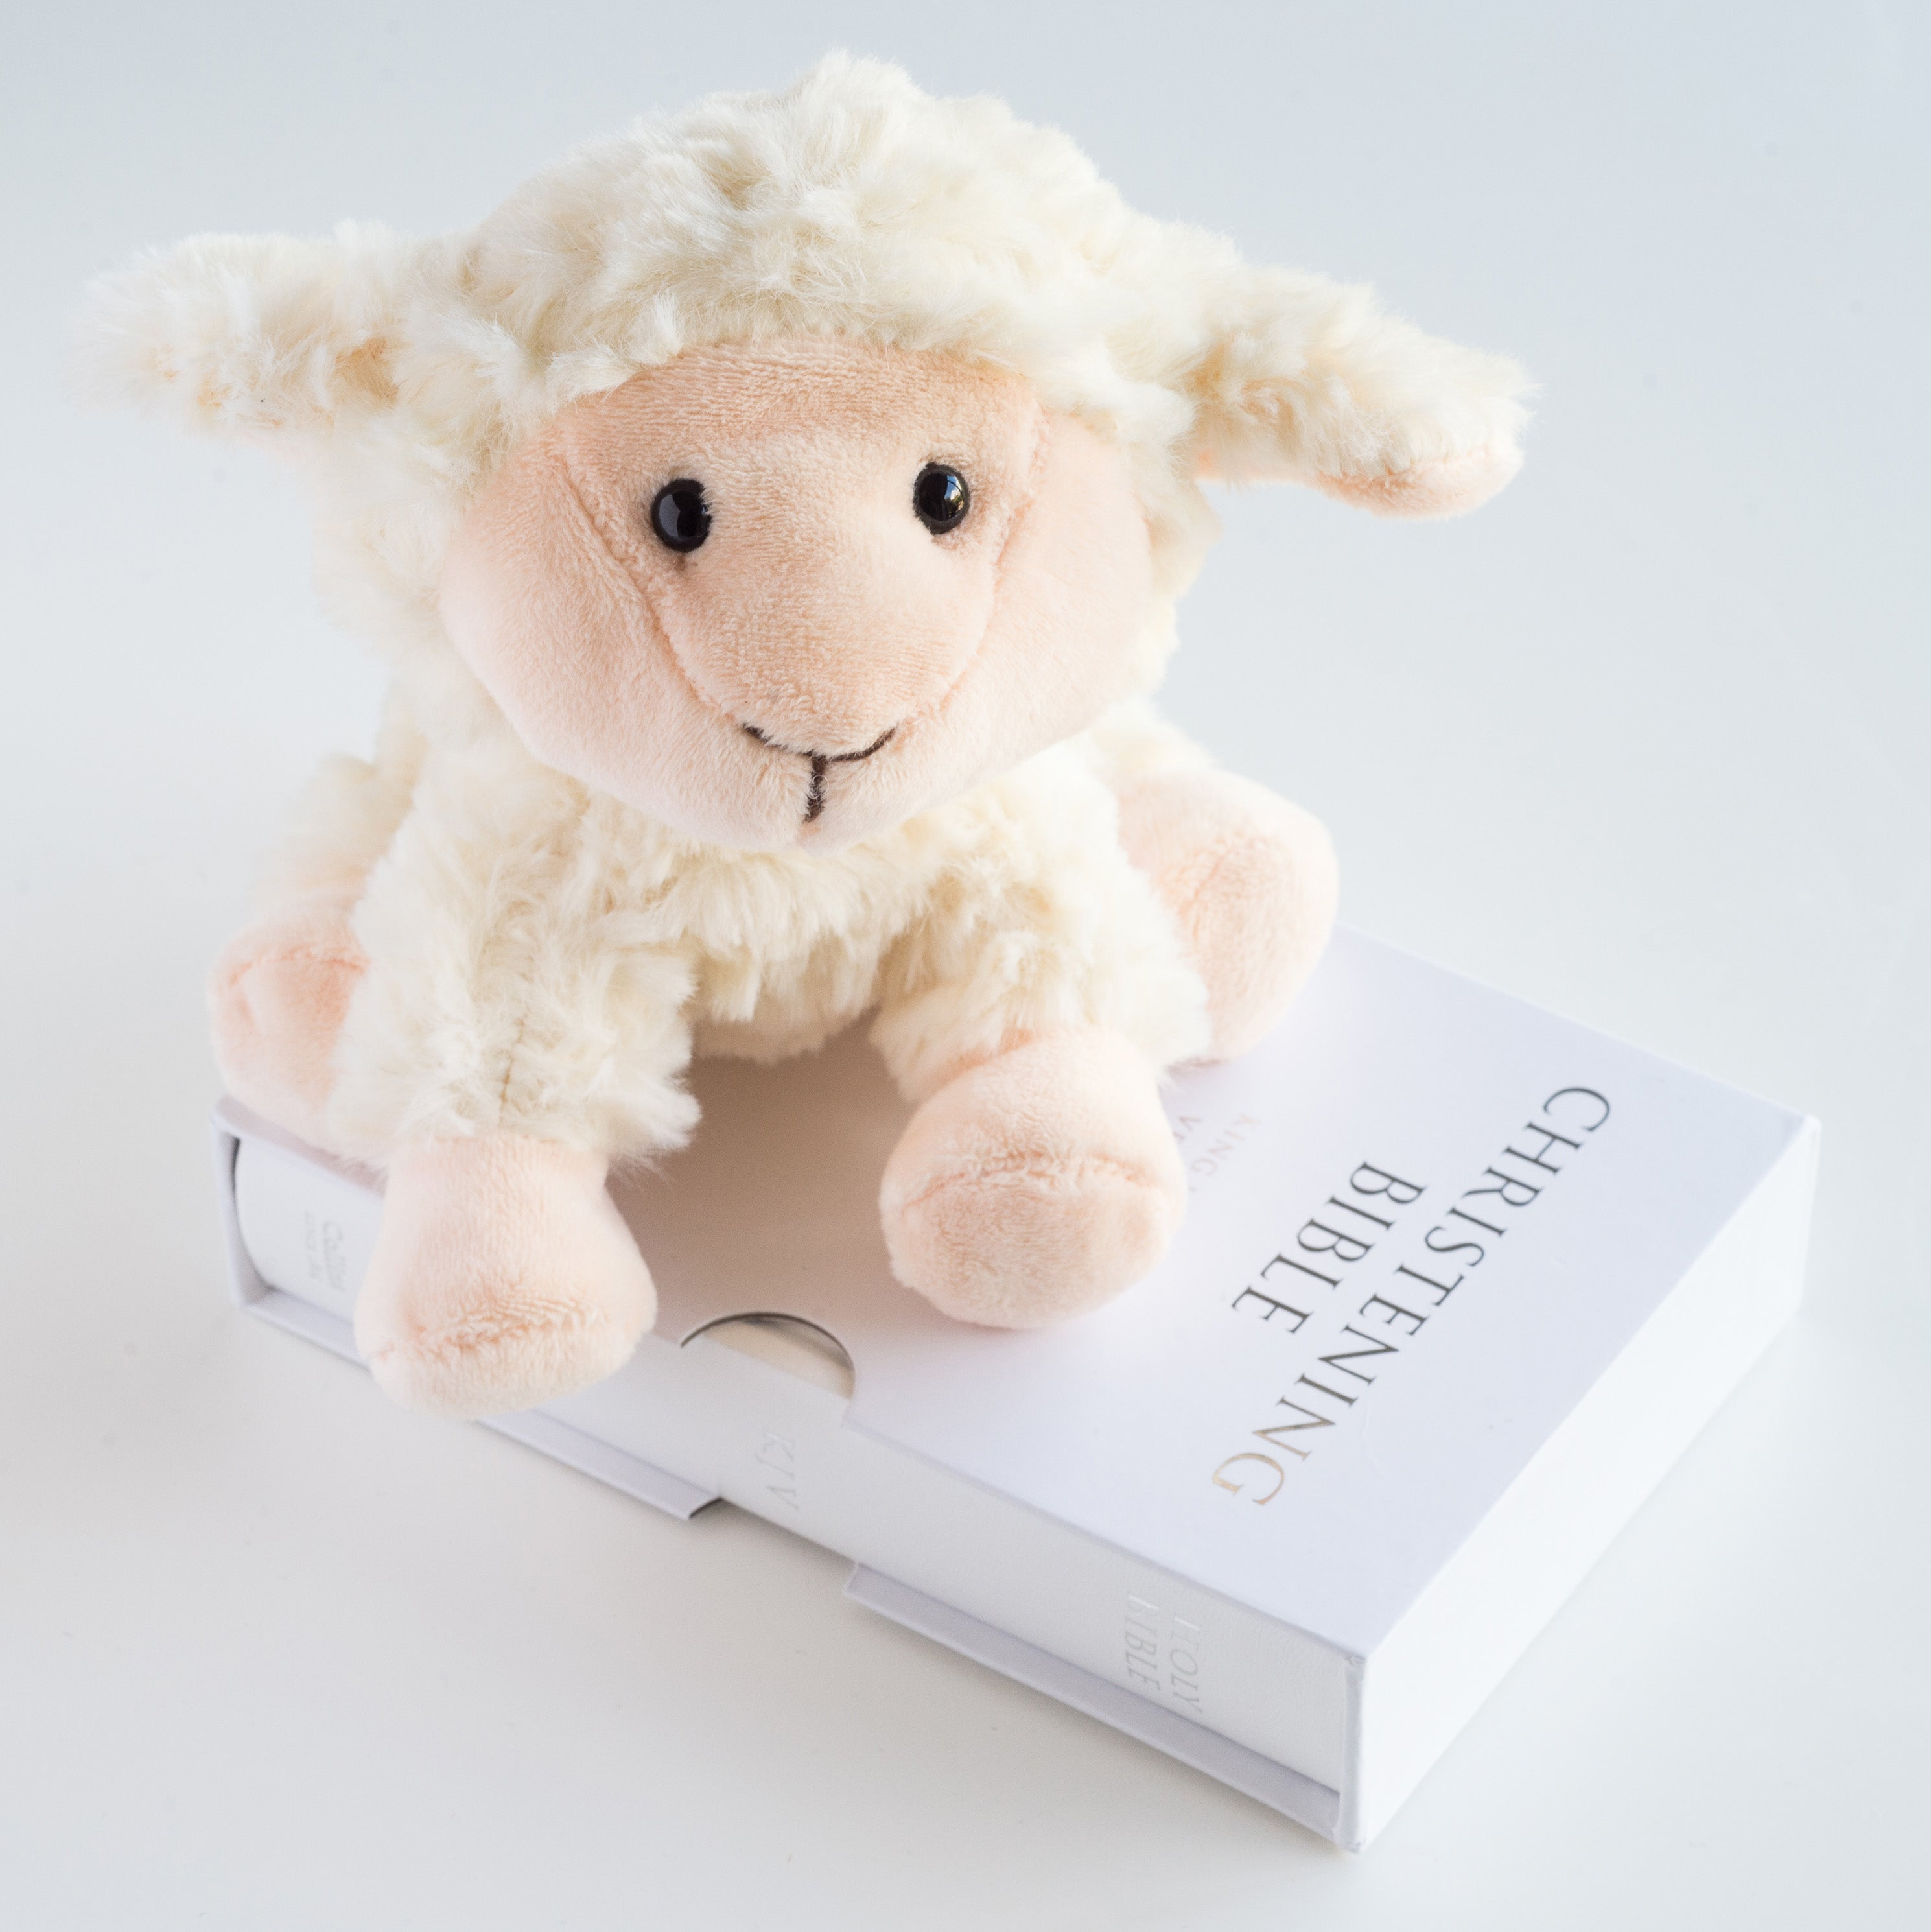 Lamb & Bible Christening Set, Religious Items by Gifts24-7